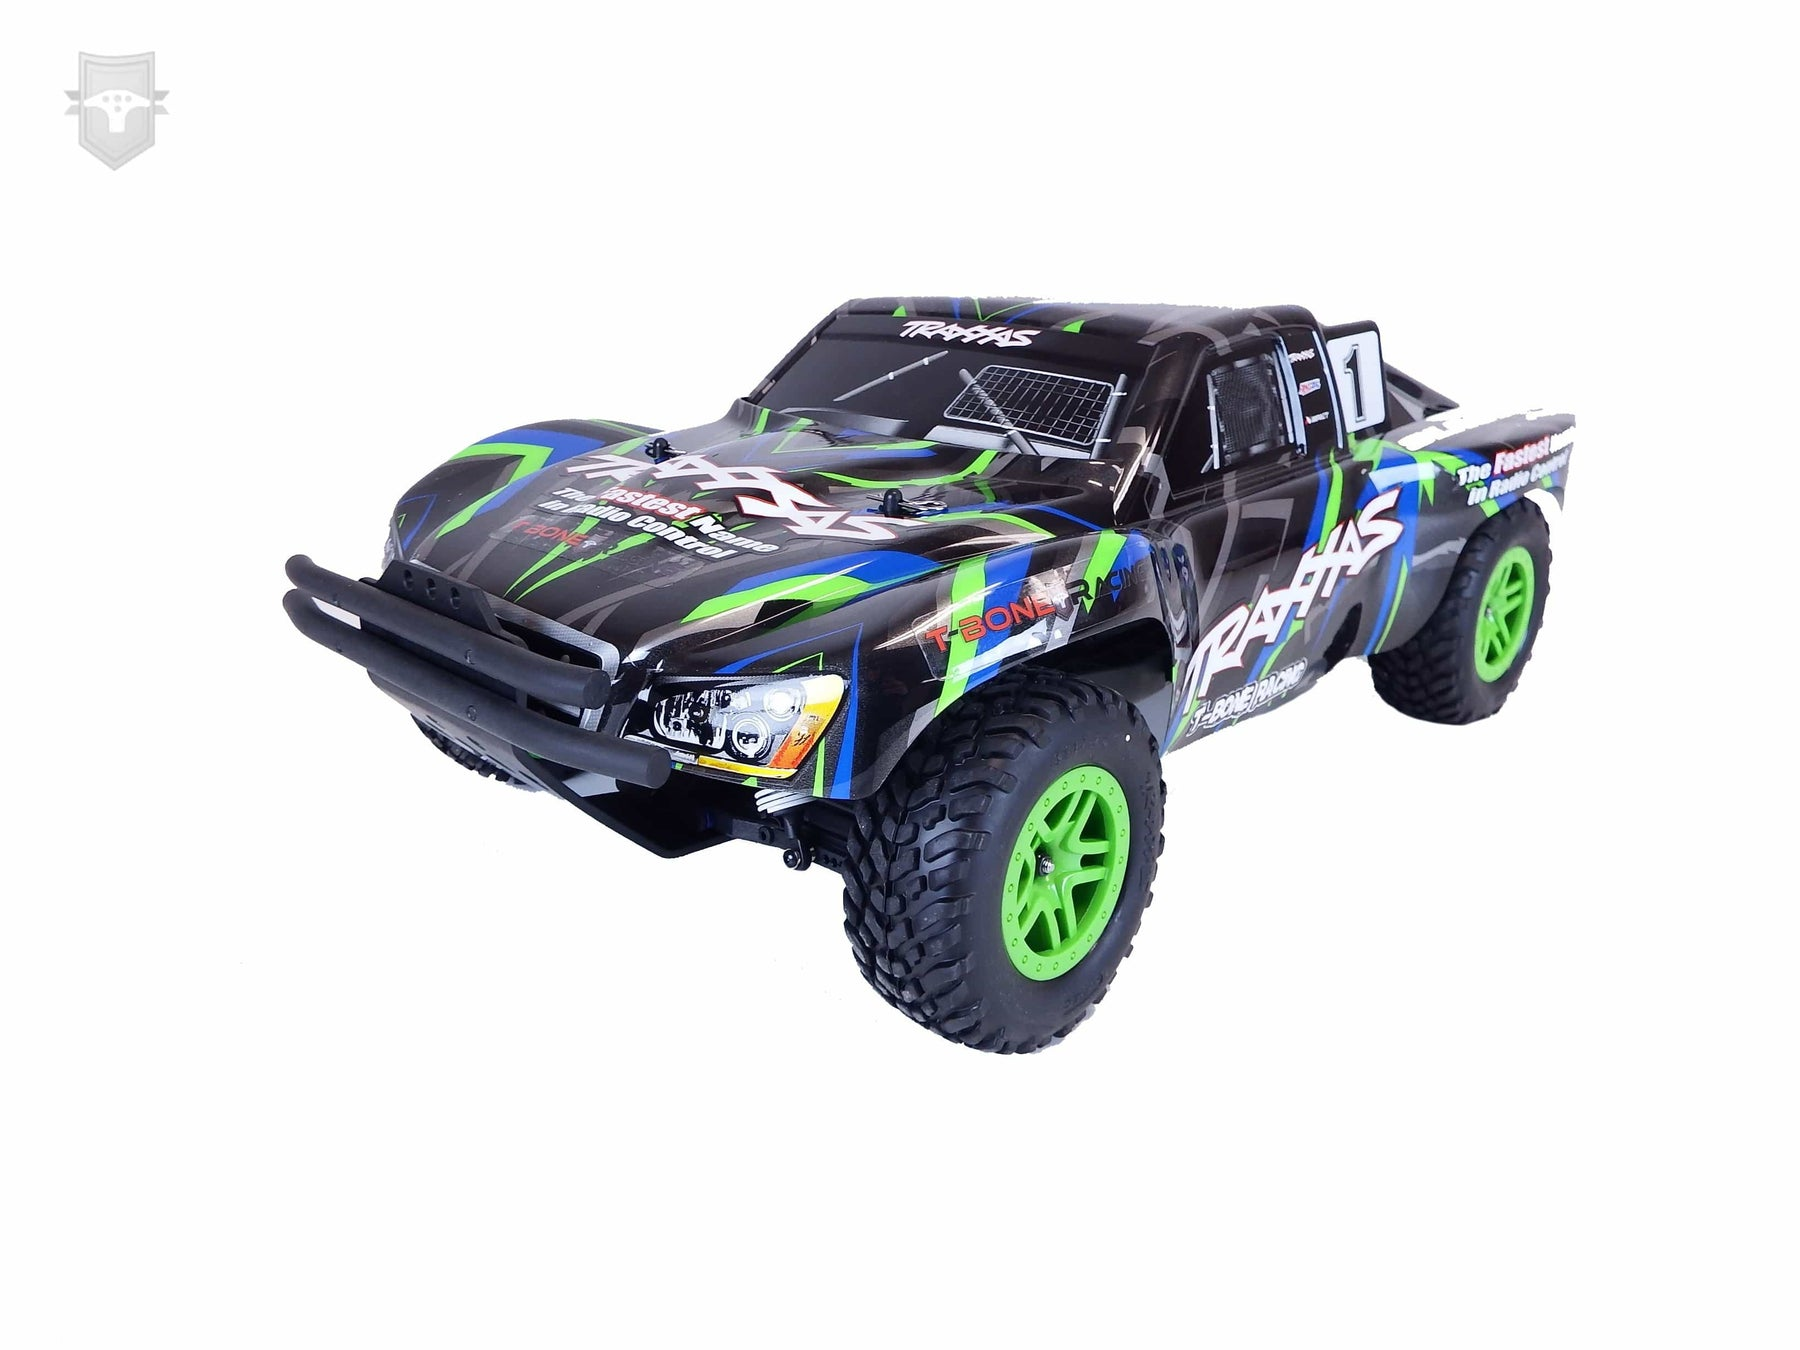 62033 - TBR XV4 Series Short Course Front Bumper - Traxxas Slash 4x4